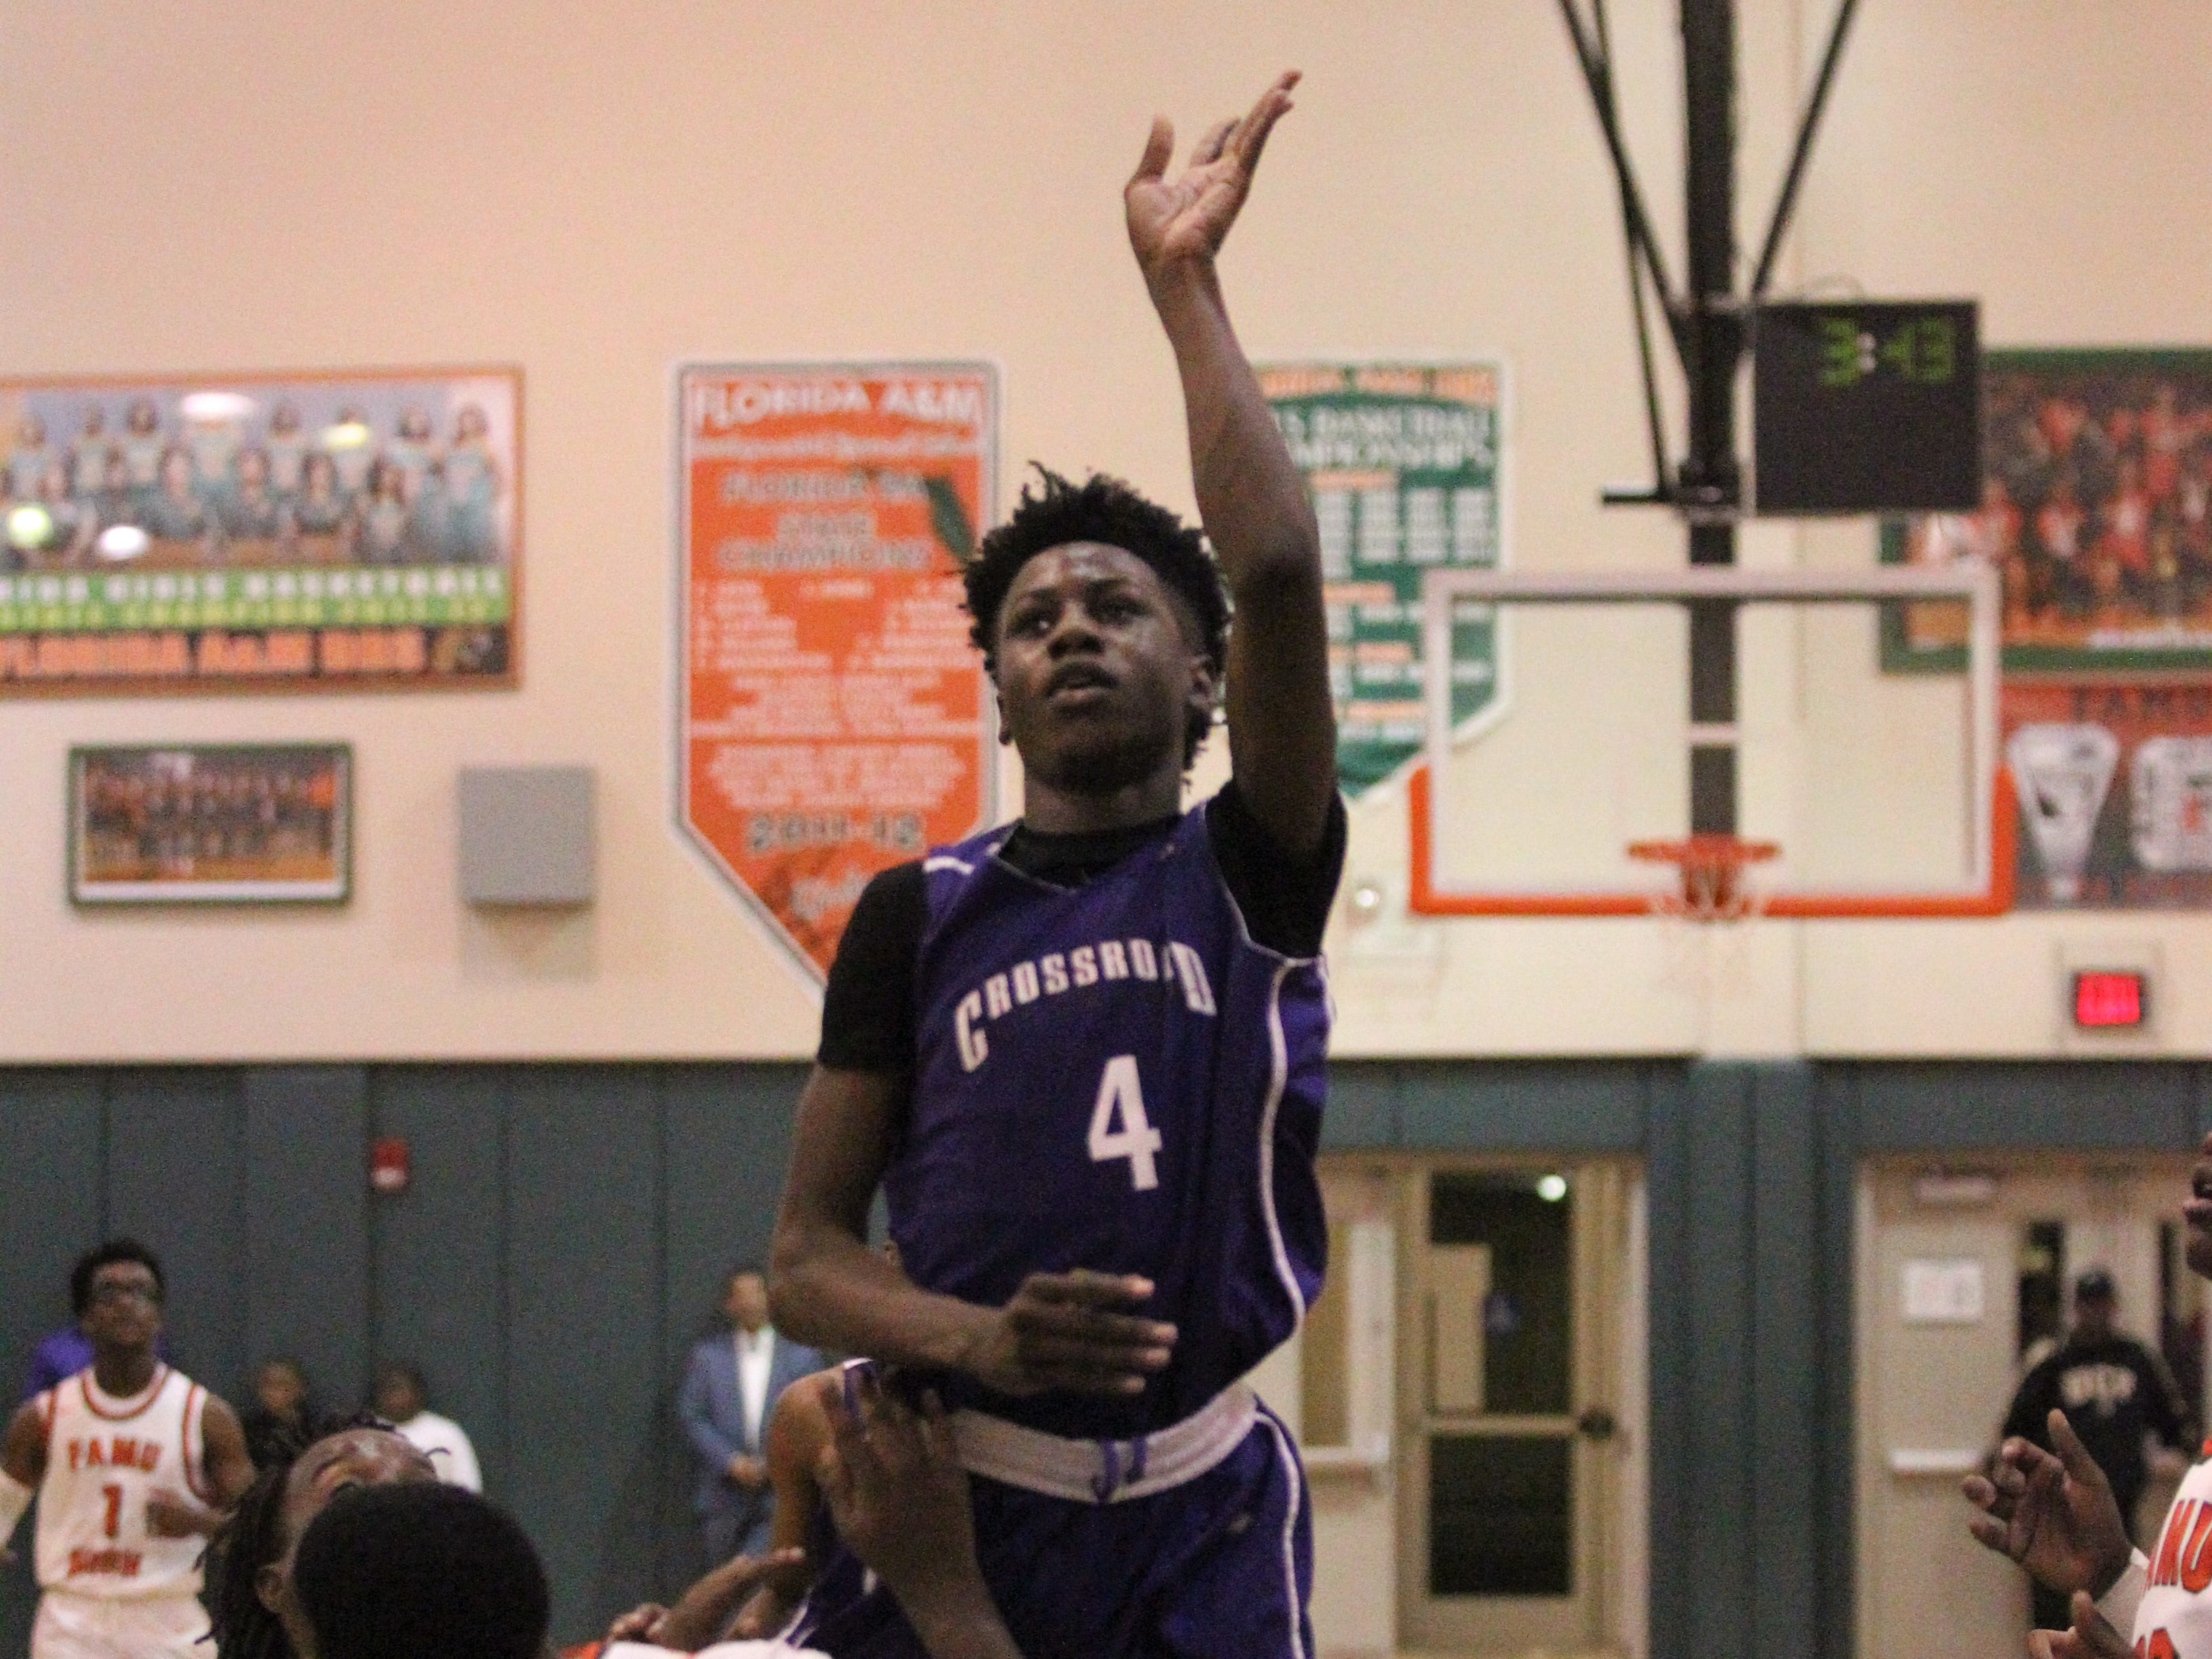 Deonta Jones goes for a runner but is calling for a foul as Crossroad Academy's boys basketball team plays at FAMU DRS on Jan. 7, 2019.